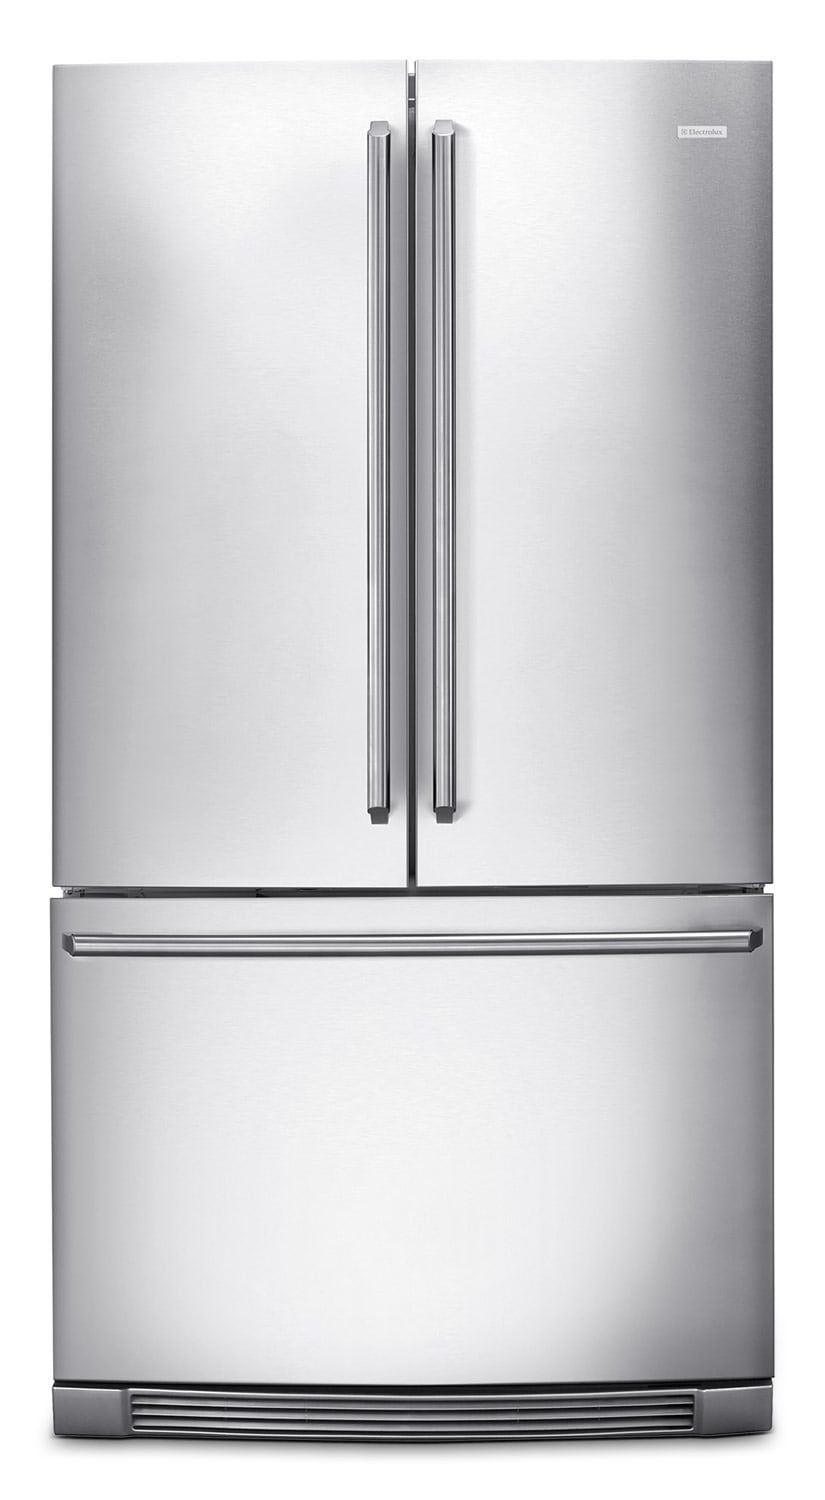 [Electrolux Stainless Steel Counter-Depth French Door Refrigerator (22.55 Cu. Ft.) - EI23BC60KS]